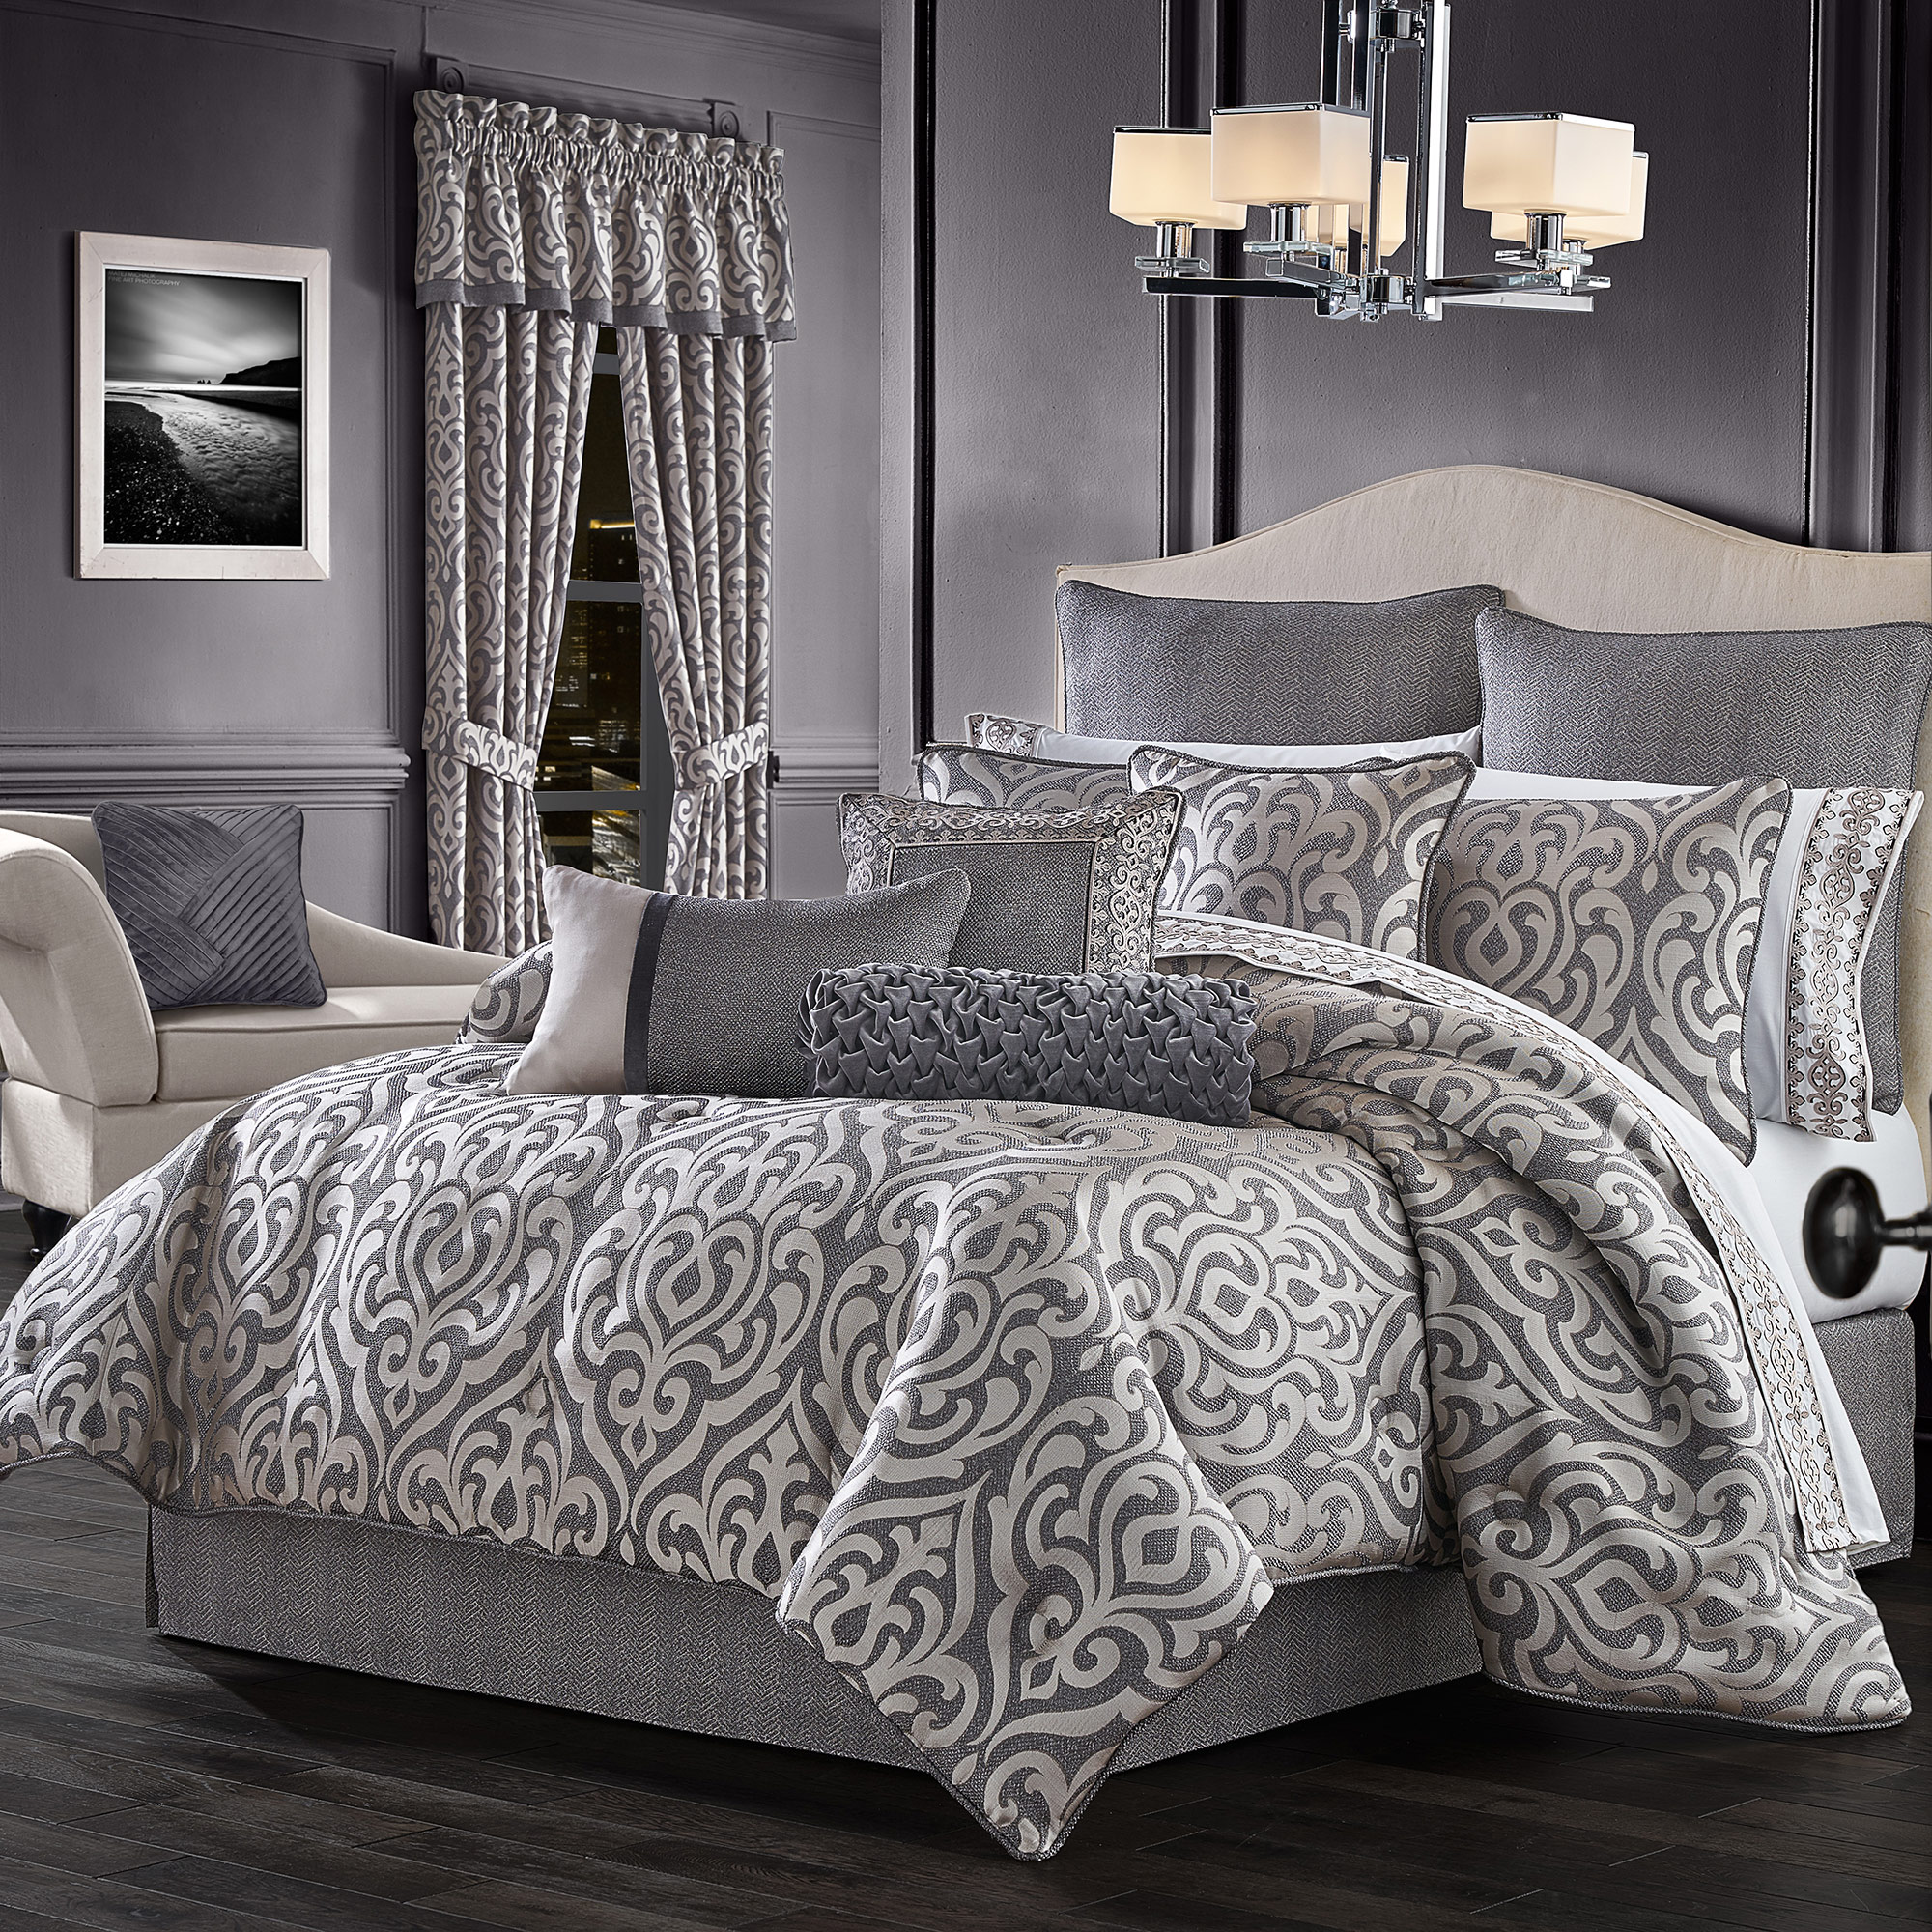 Tribeca California King 4 Piece Comforter Set